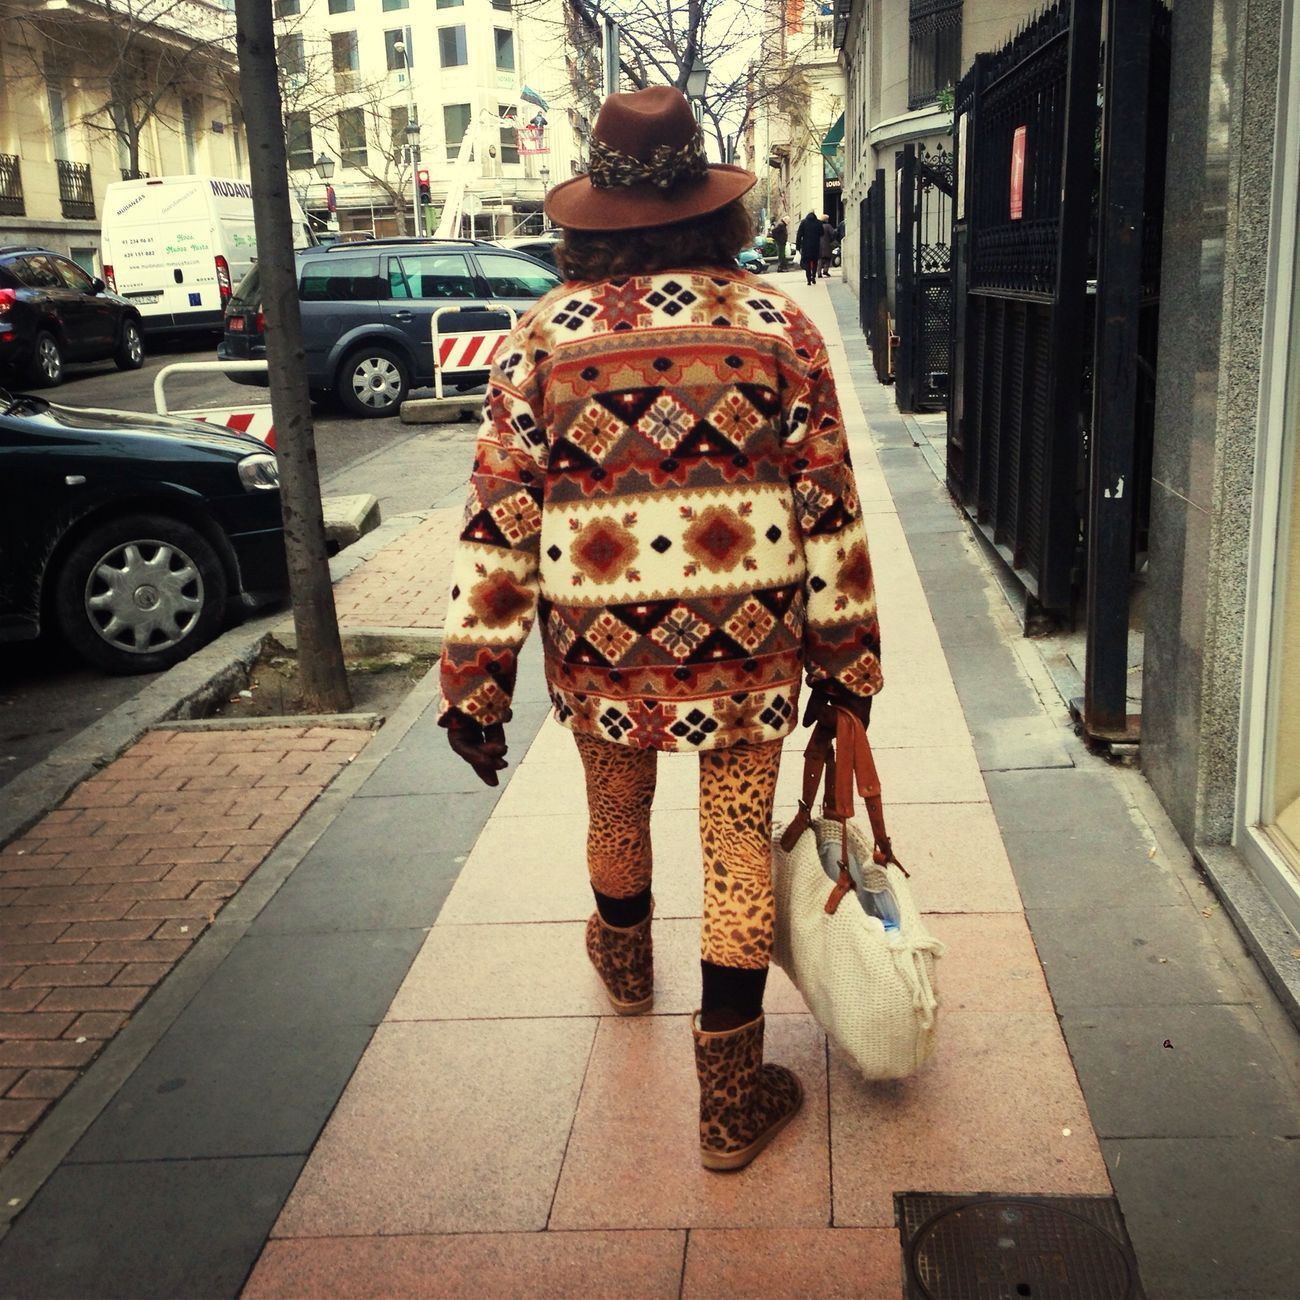 Fashion grandma walking on the street!